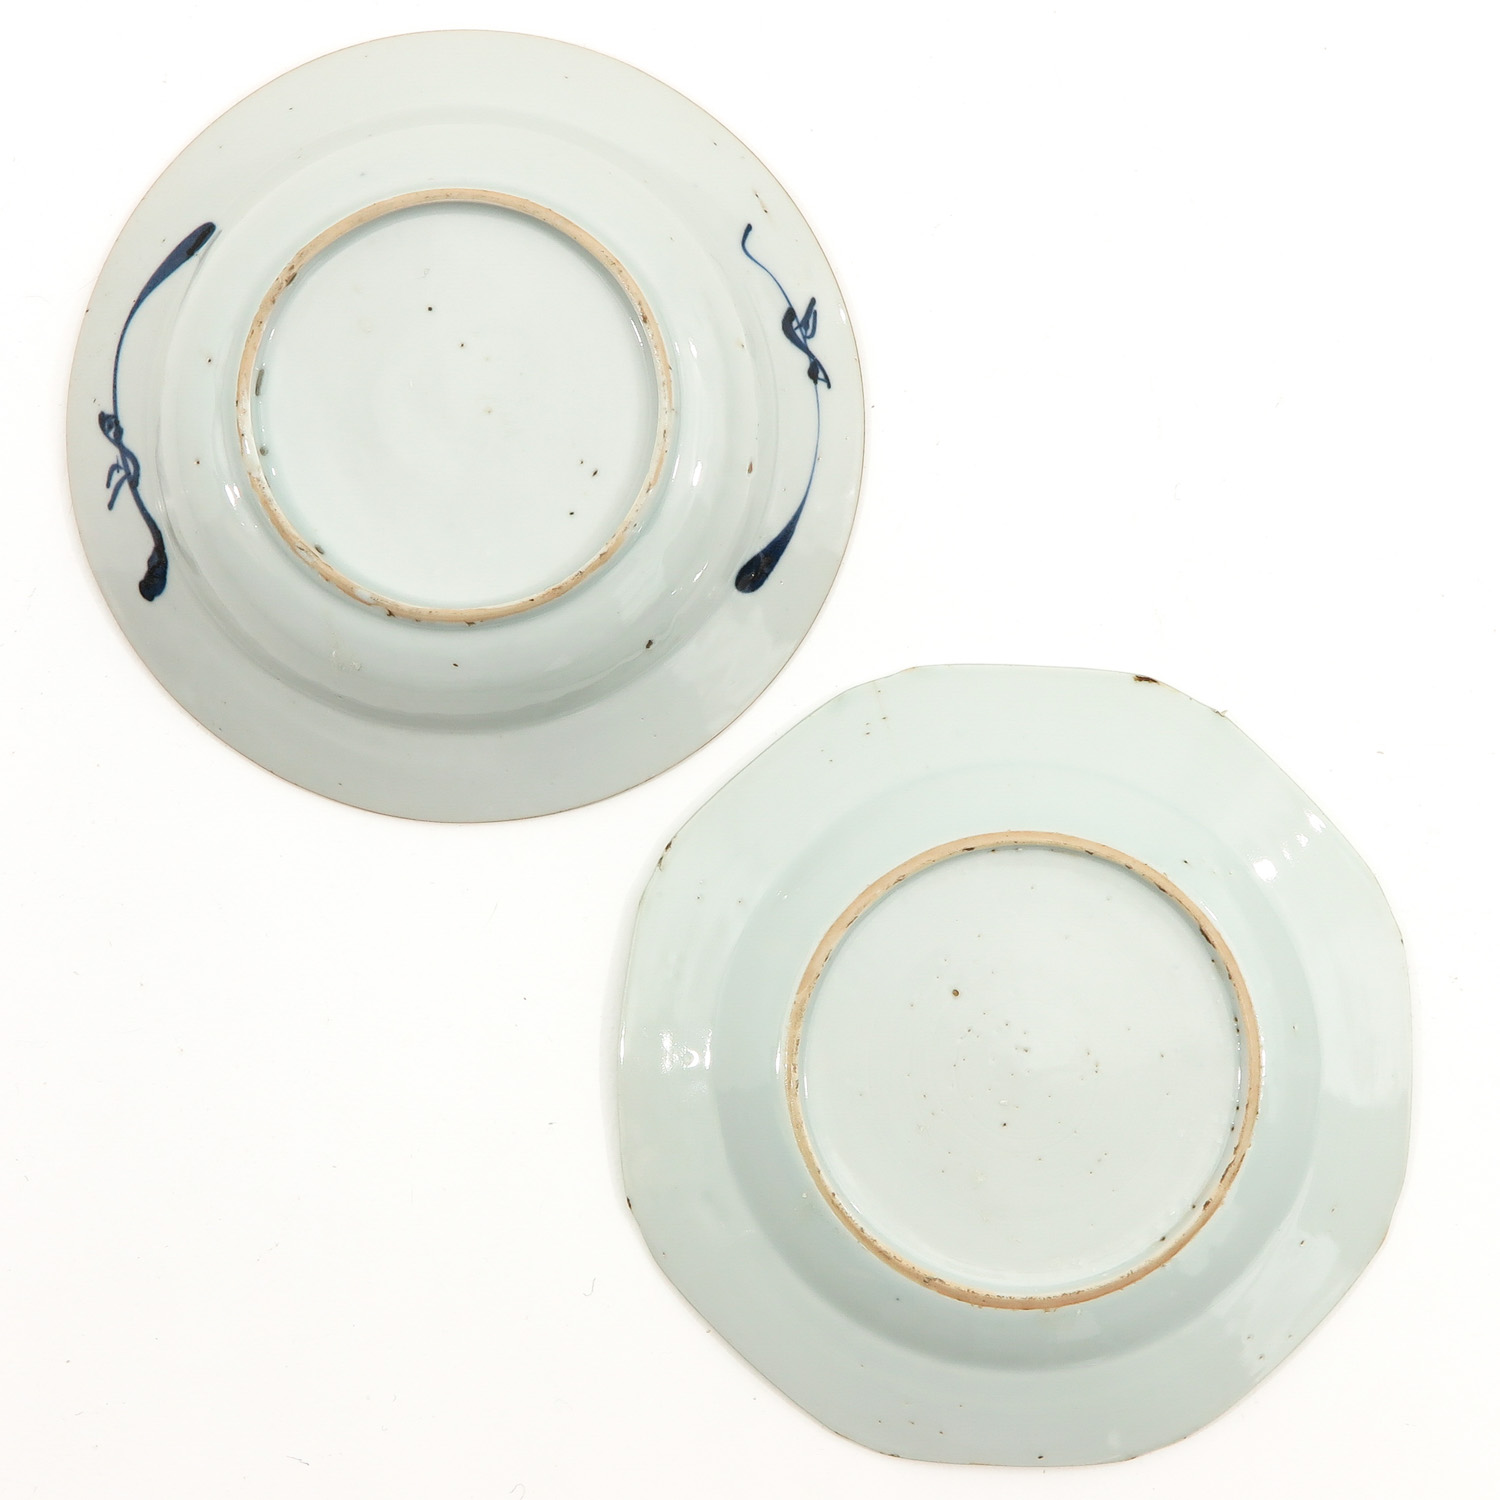 A Lot of 5 Blue and White Plates - Image 8 of 10